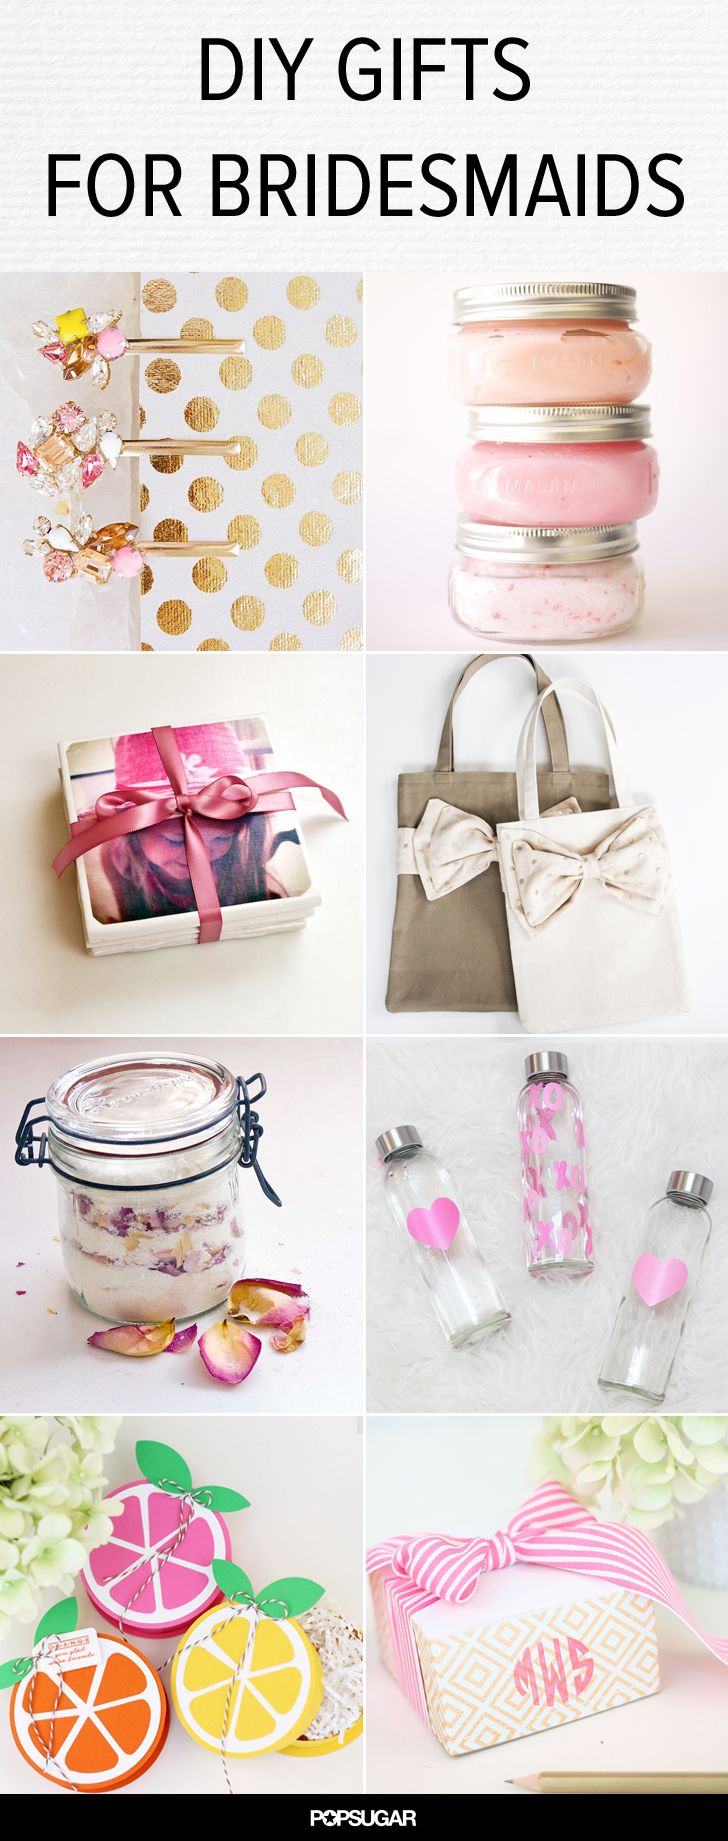 Bridesmaid-Gift-Ideas-These-DIY-projects-will-make-perfect ...